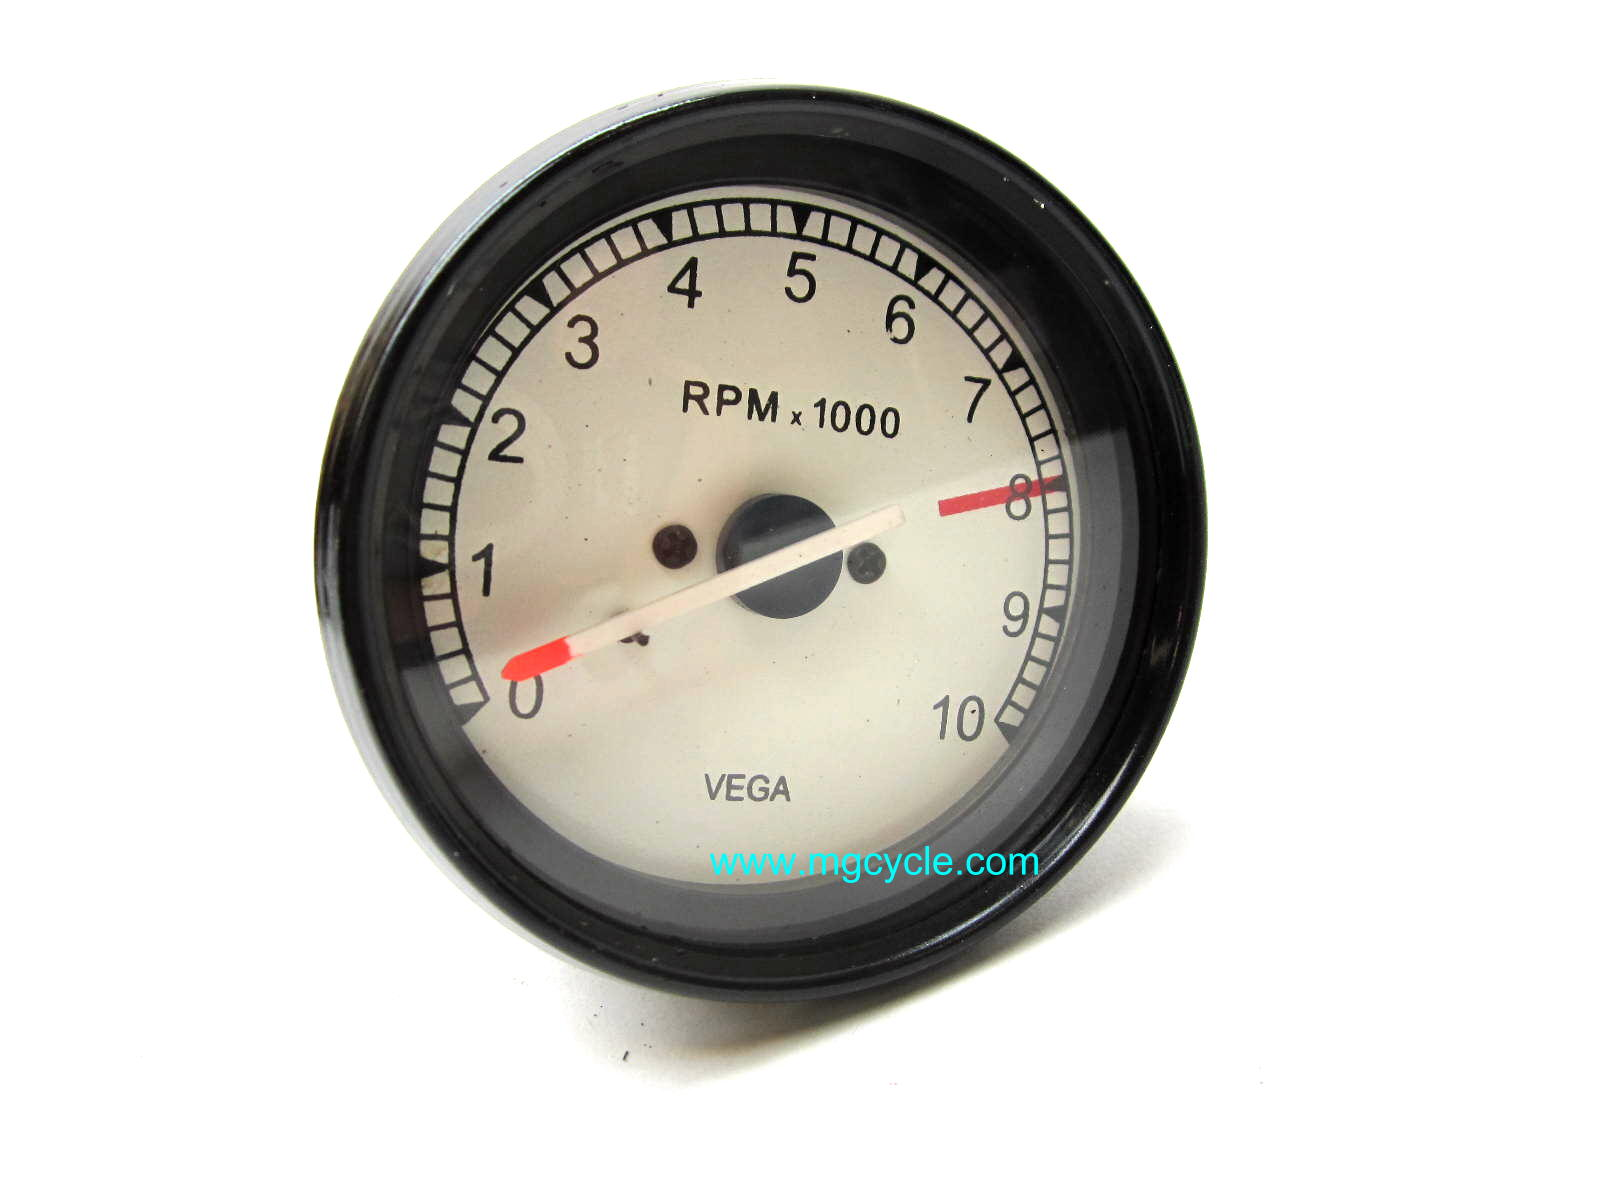 VEGA tachometer, 80mm, lighted - Click Image to Close